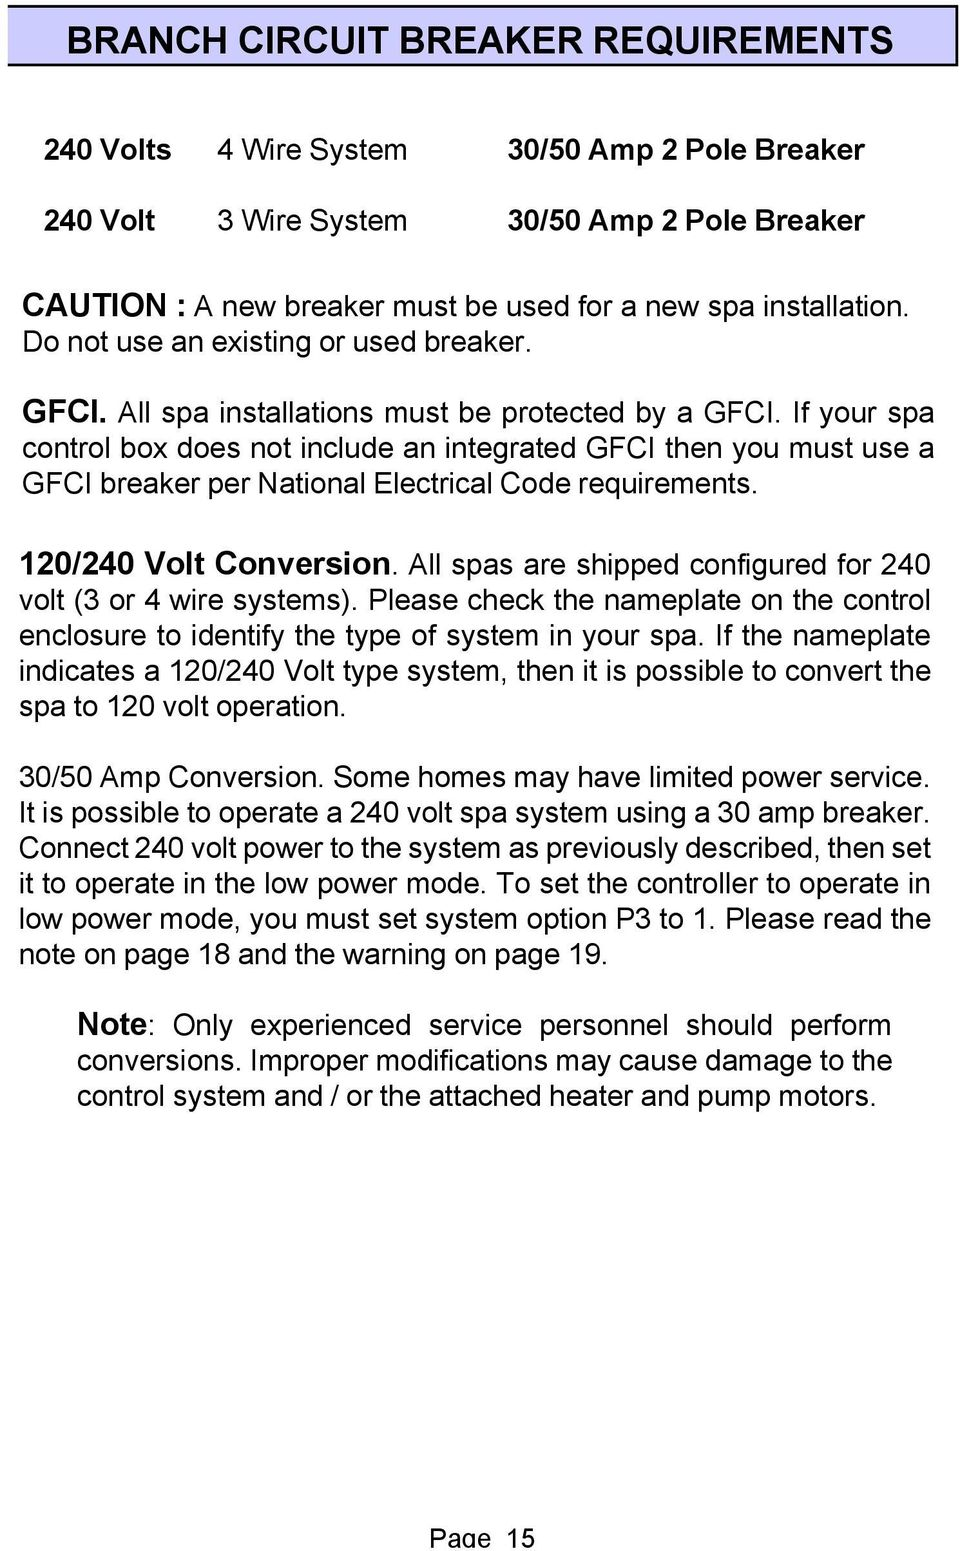 hight resolution of if your spa control box does not include an integrated gfci then you must use a